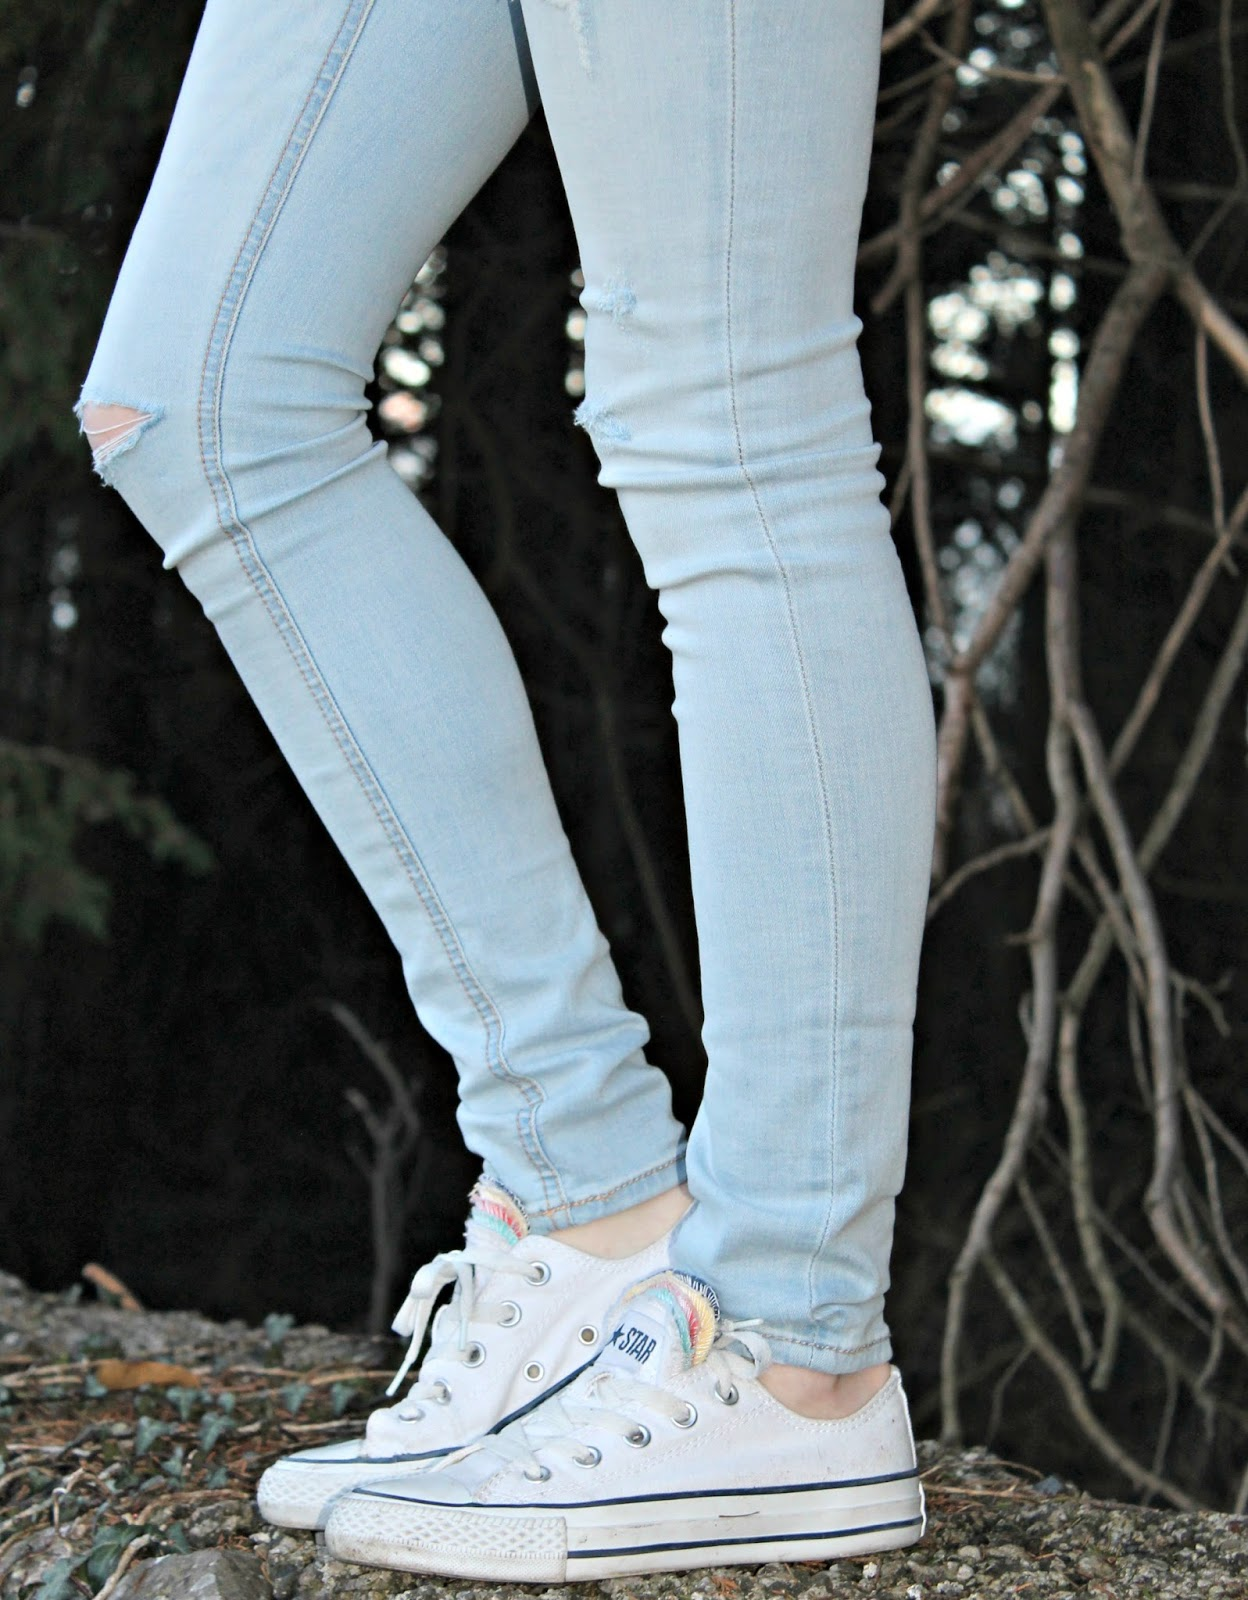 converse and ripped jeans